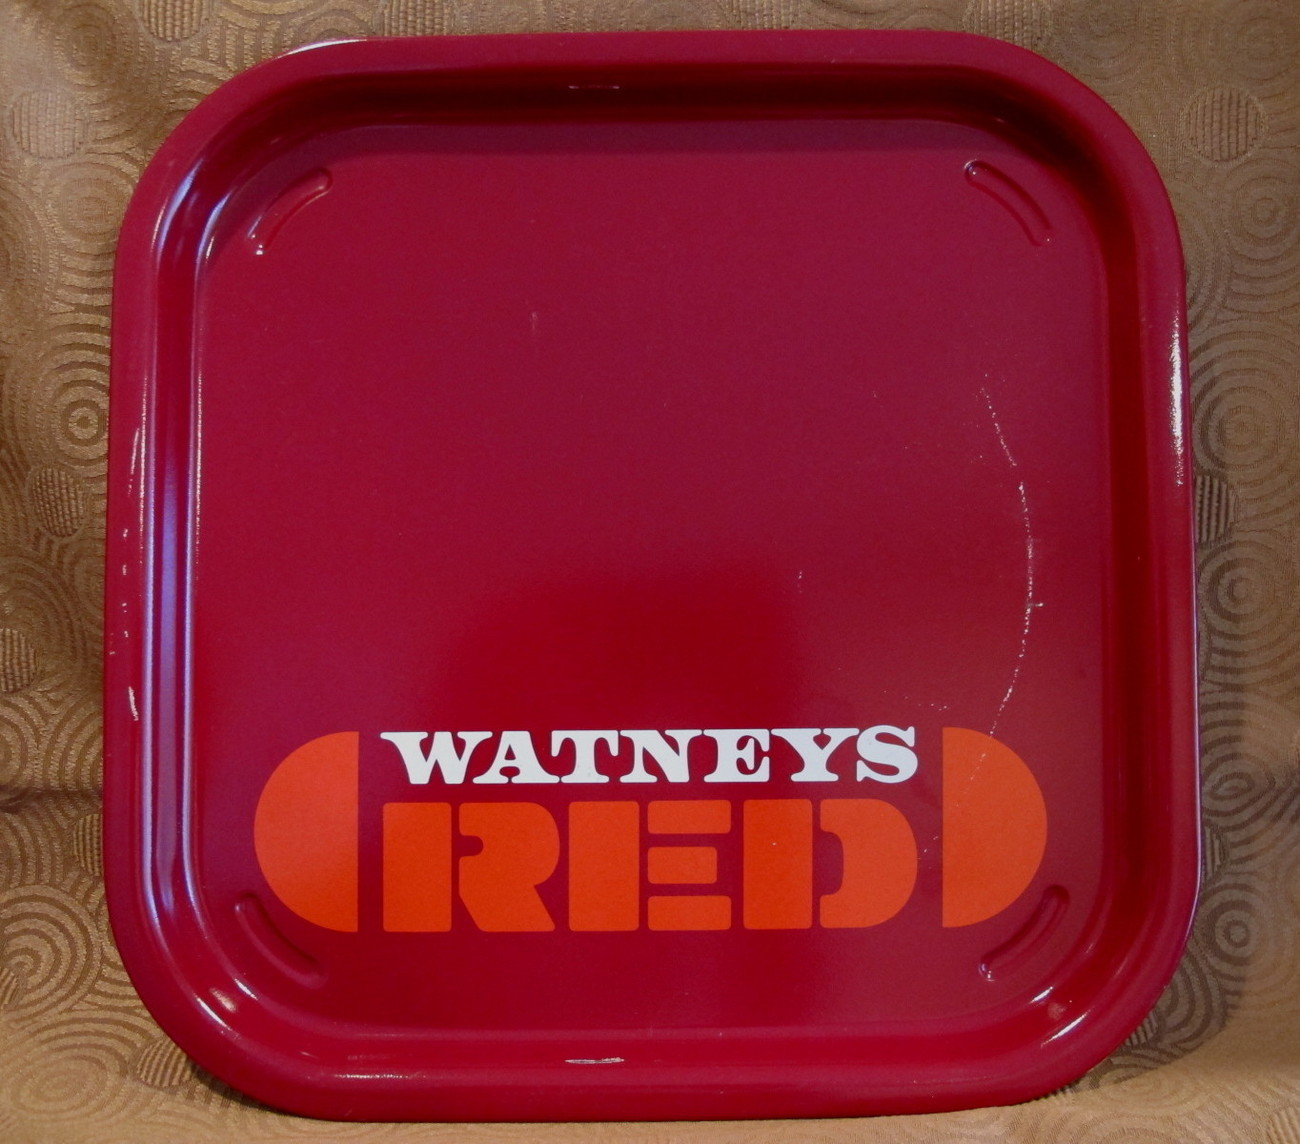 WATNEYS RED Beer Tray British Souvenir Collector Collectible Vintage Barrel